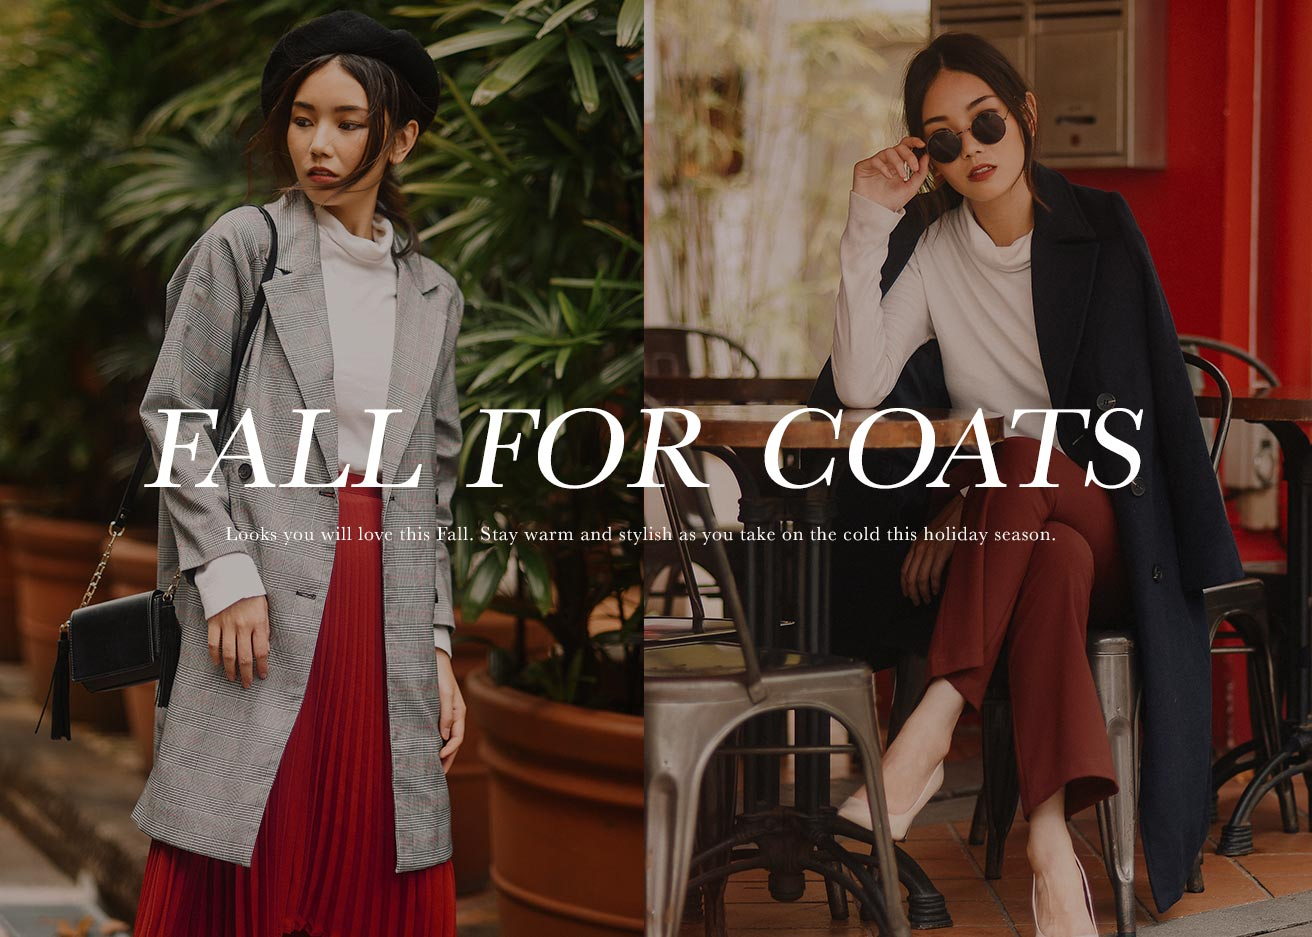 FALL FOR COATS